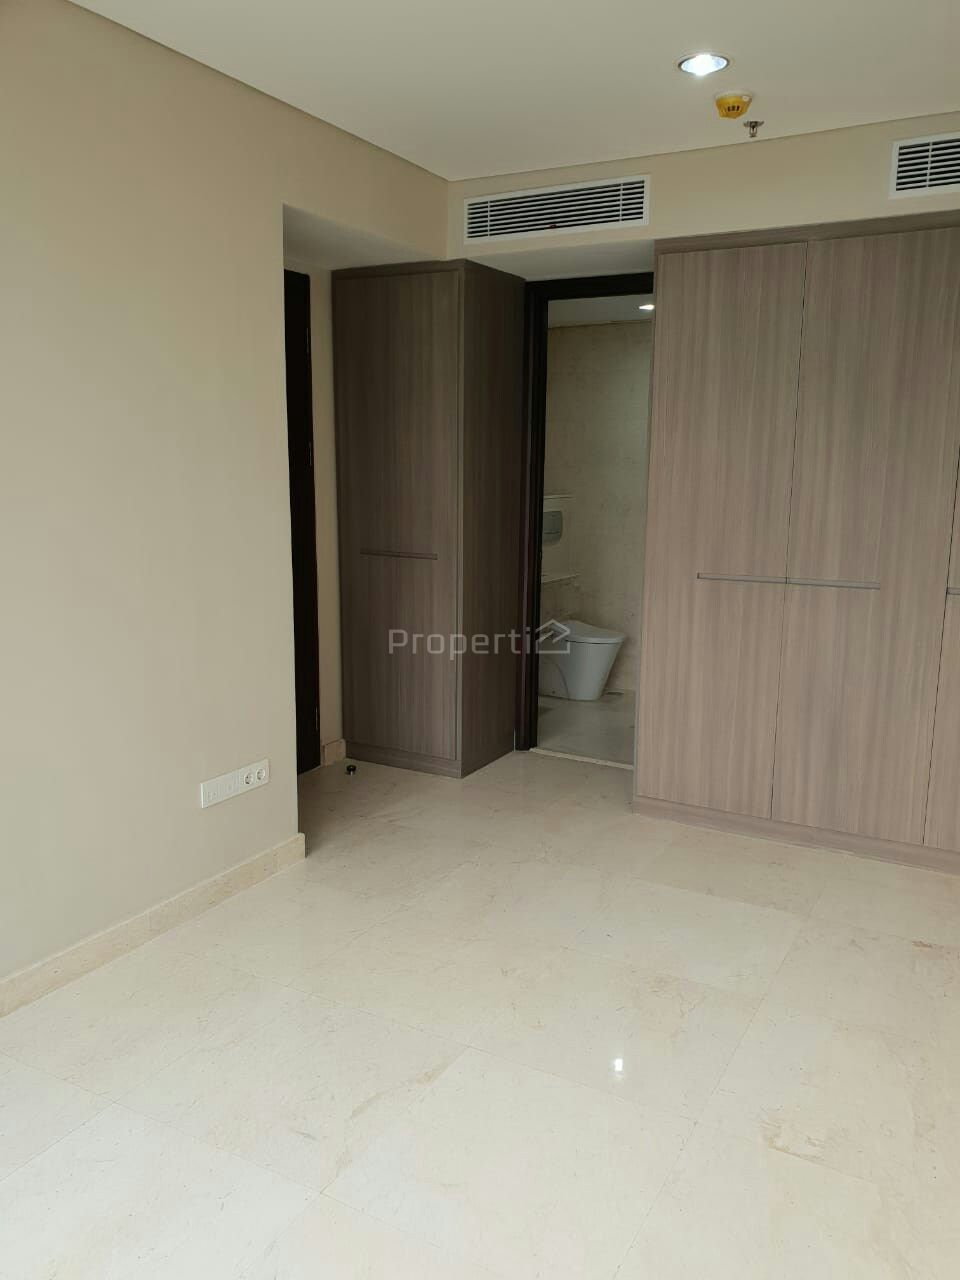 2 BR Unit on 7th Floor at Tower Orchard, Ciputra World 2, DKI Jakarta